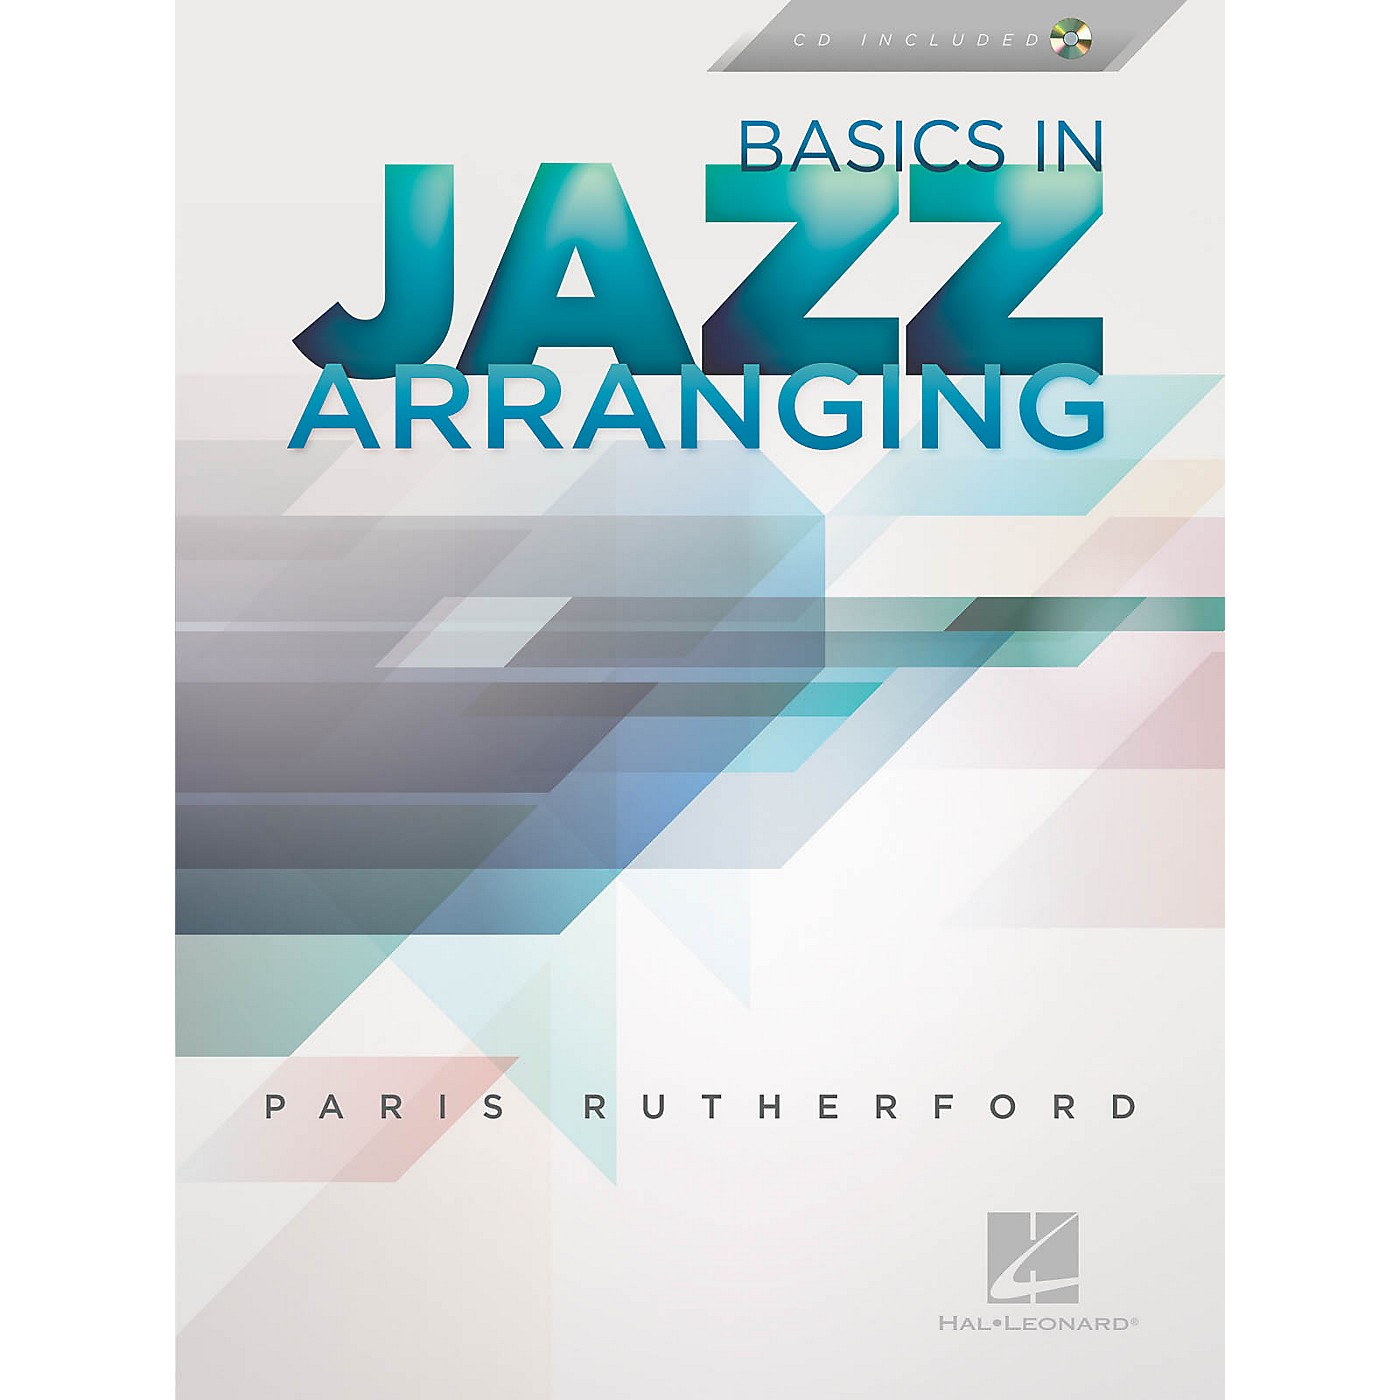 Hal Leonard Basics in Jazz Arranging Jazz Instruction Series Softcover with CD thumbnail